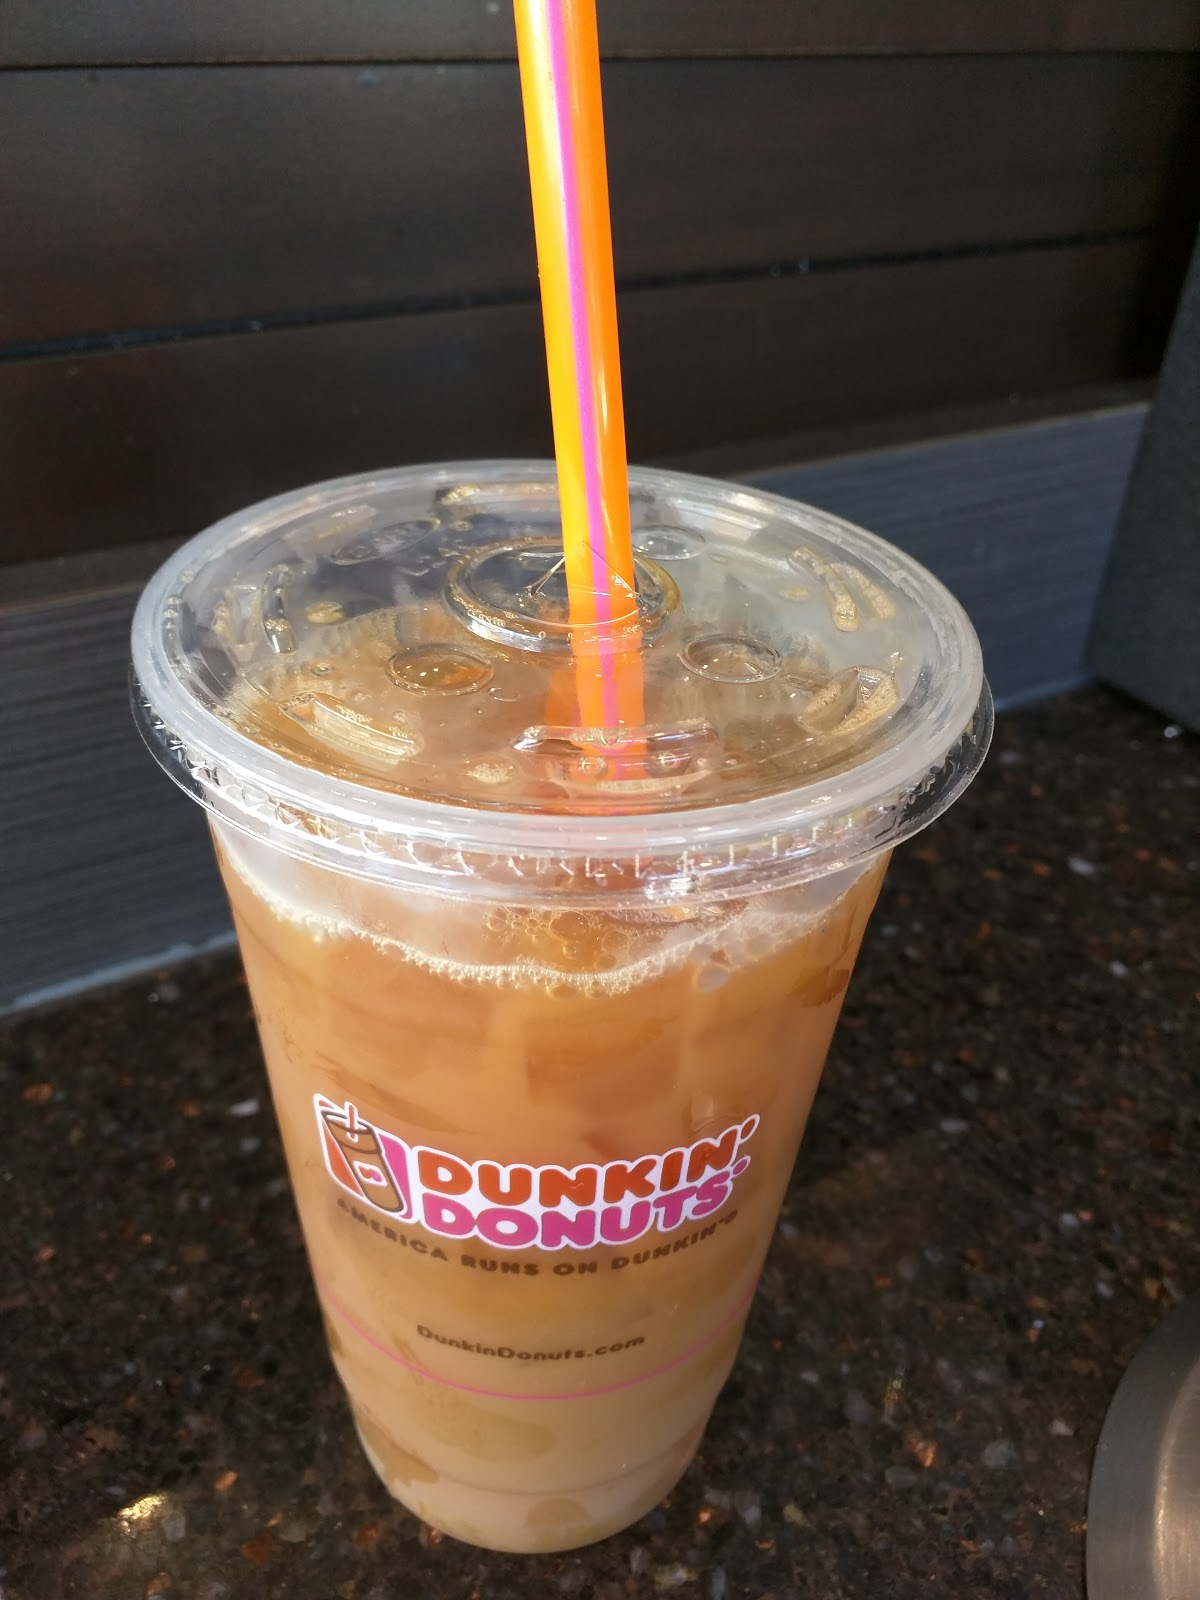 Dunkin' Donuts - The Drinks | Julie's Dining Club